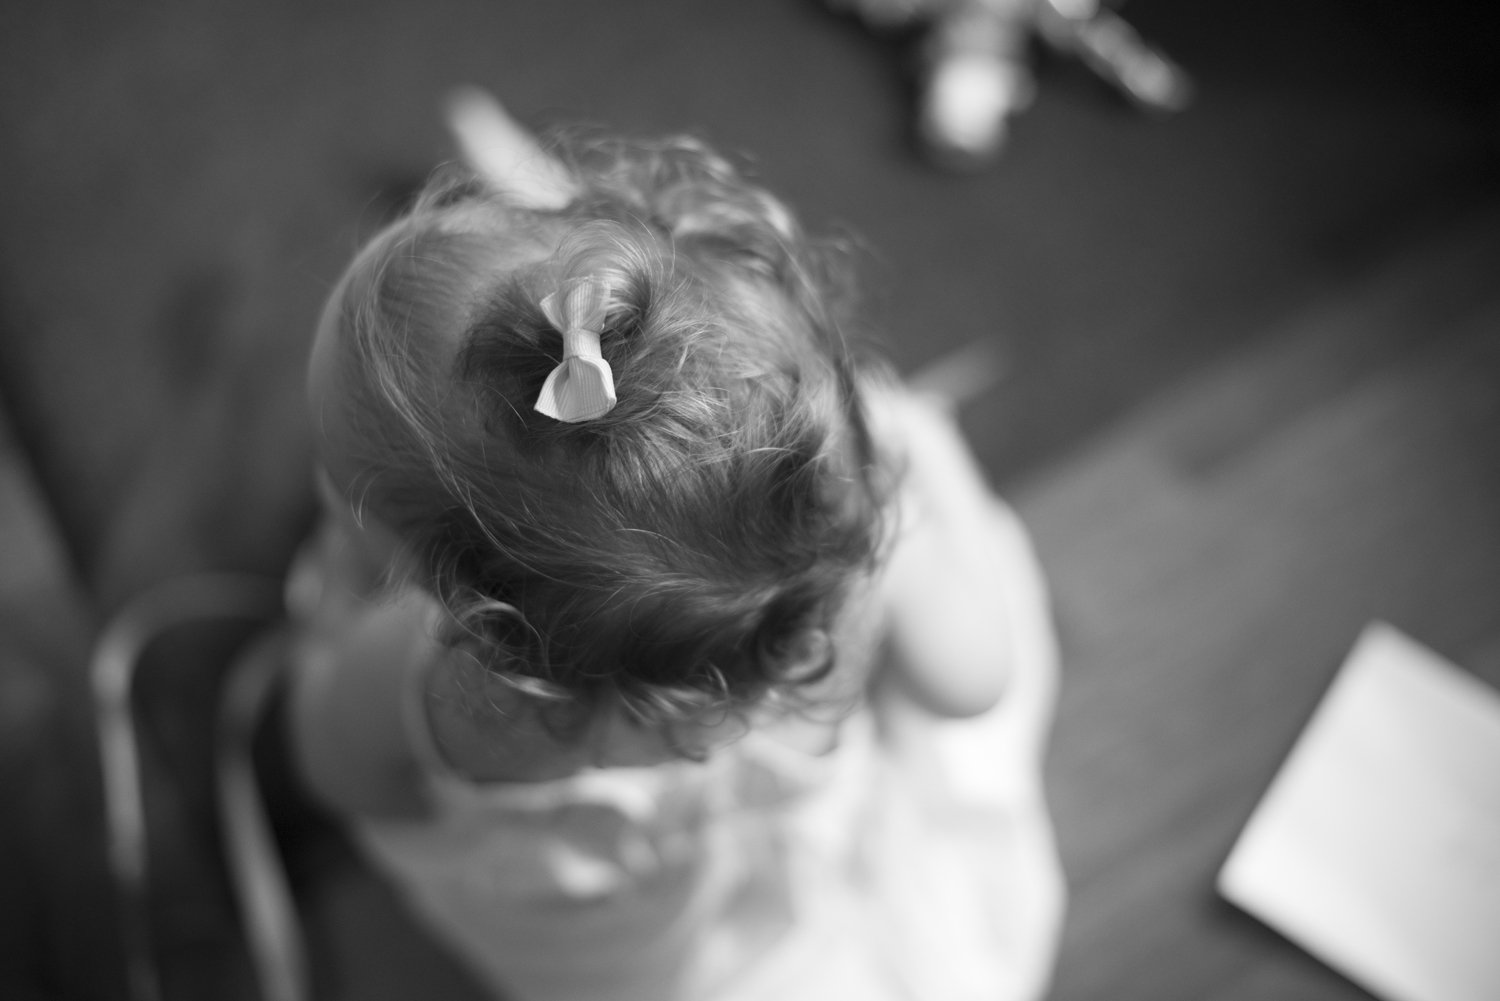 Baby with bow on her head (black and white)